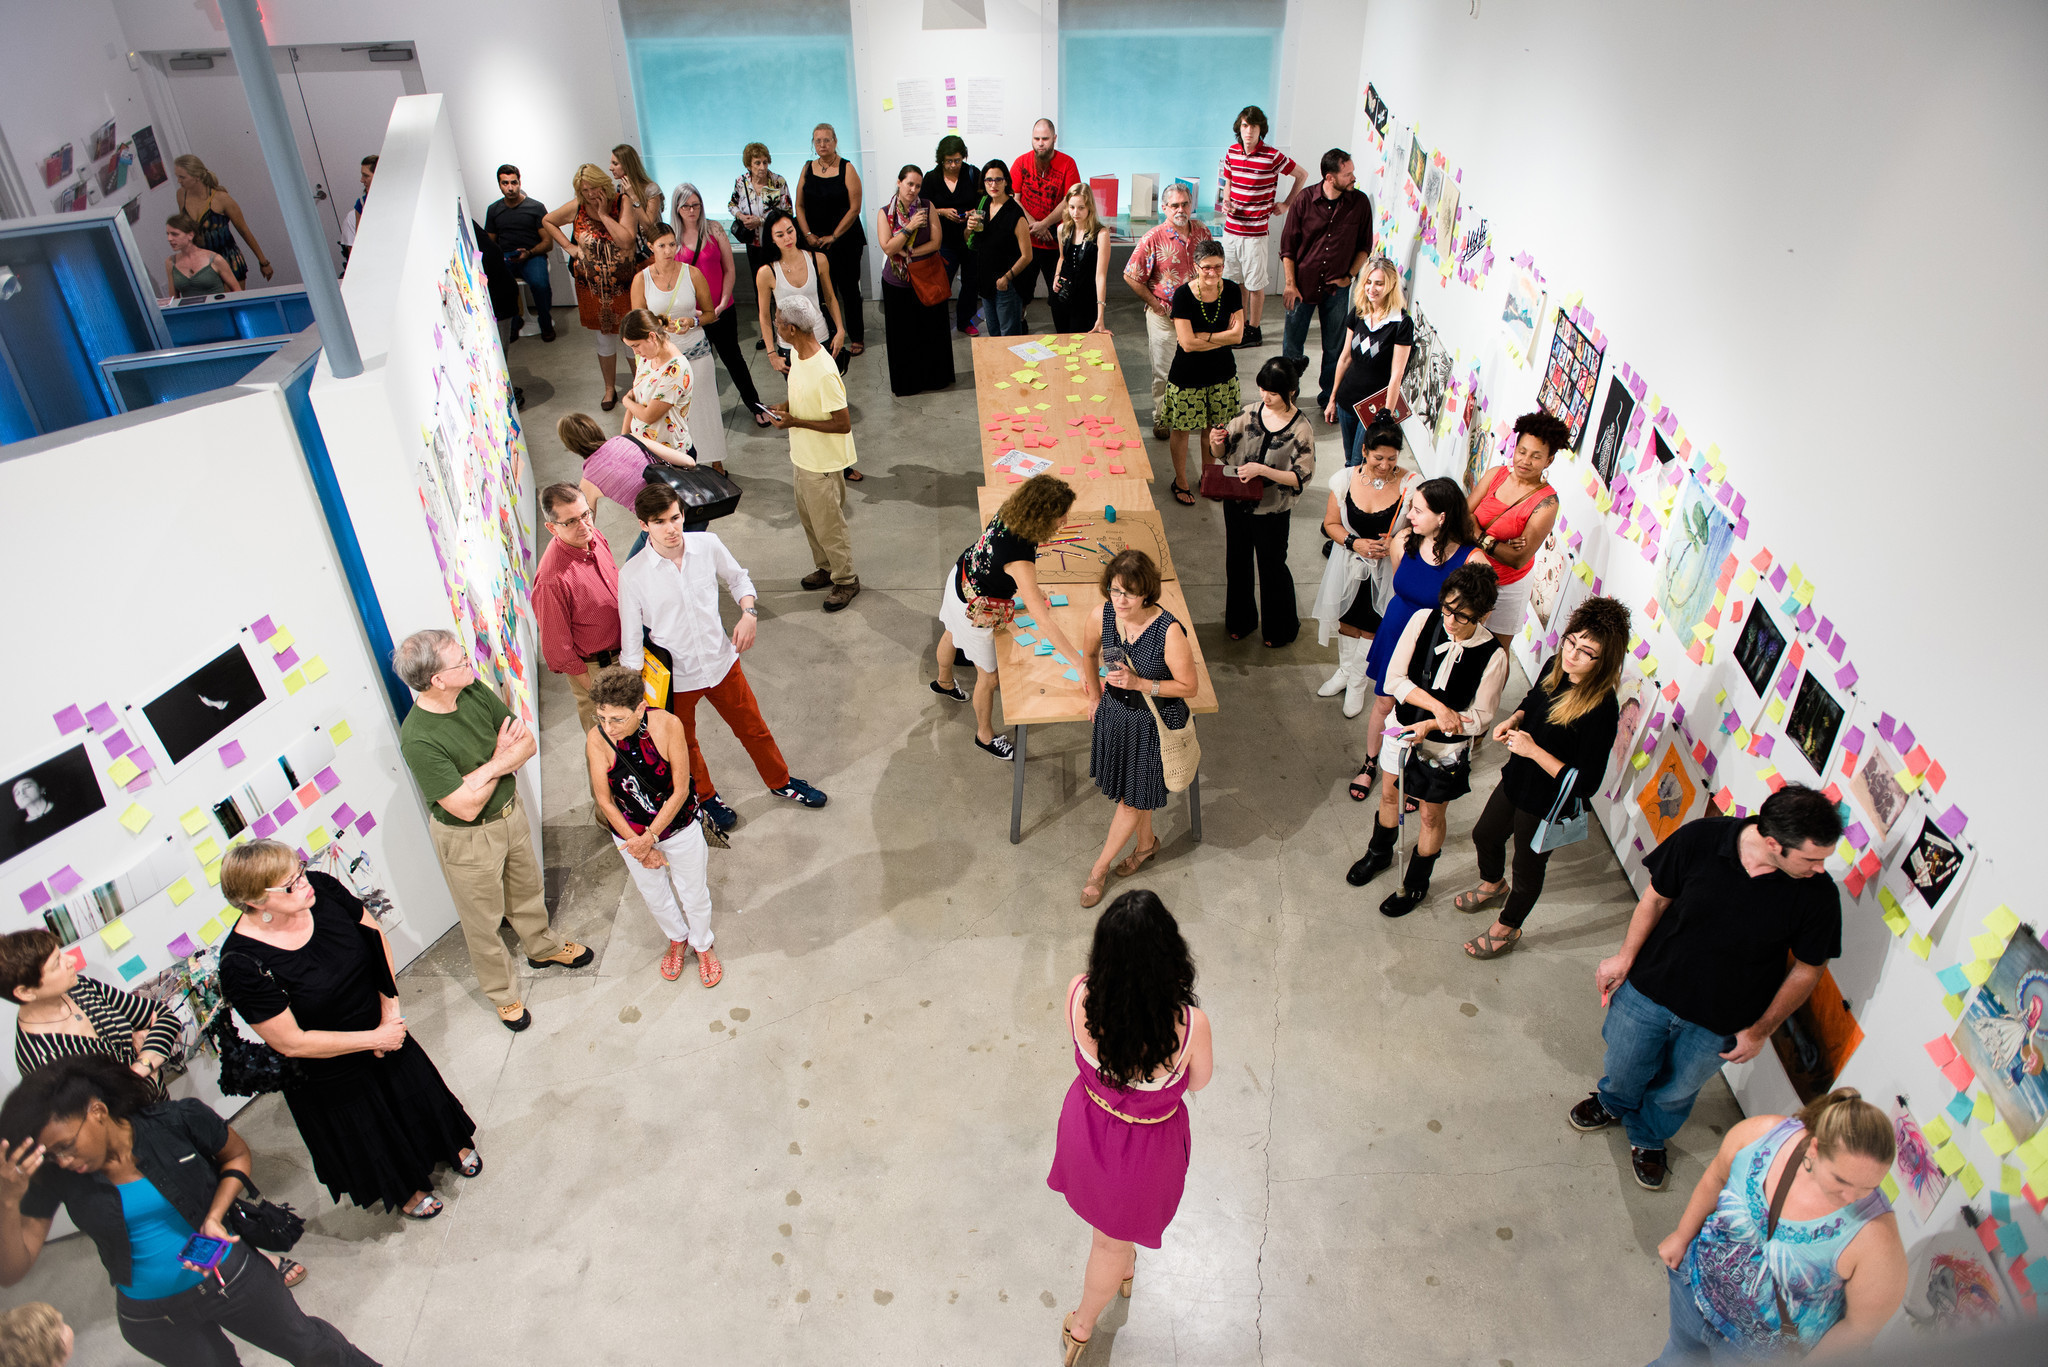 Art fallout art walk expands in fort lauderdale southflorida malvernweather Choice Image